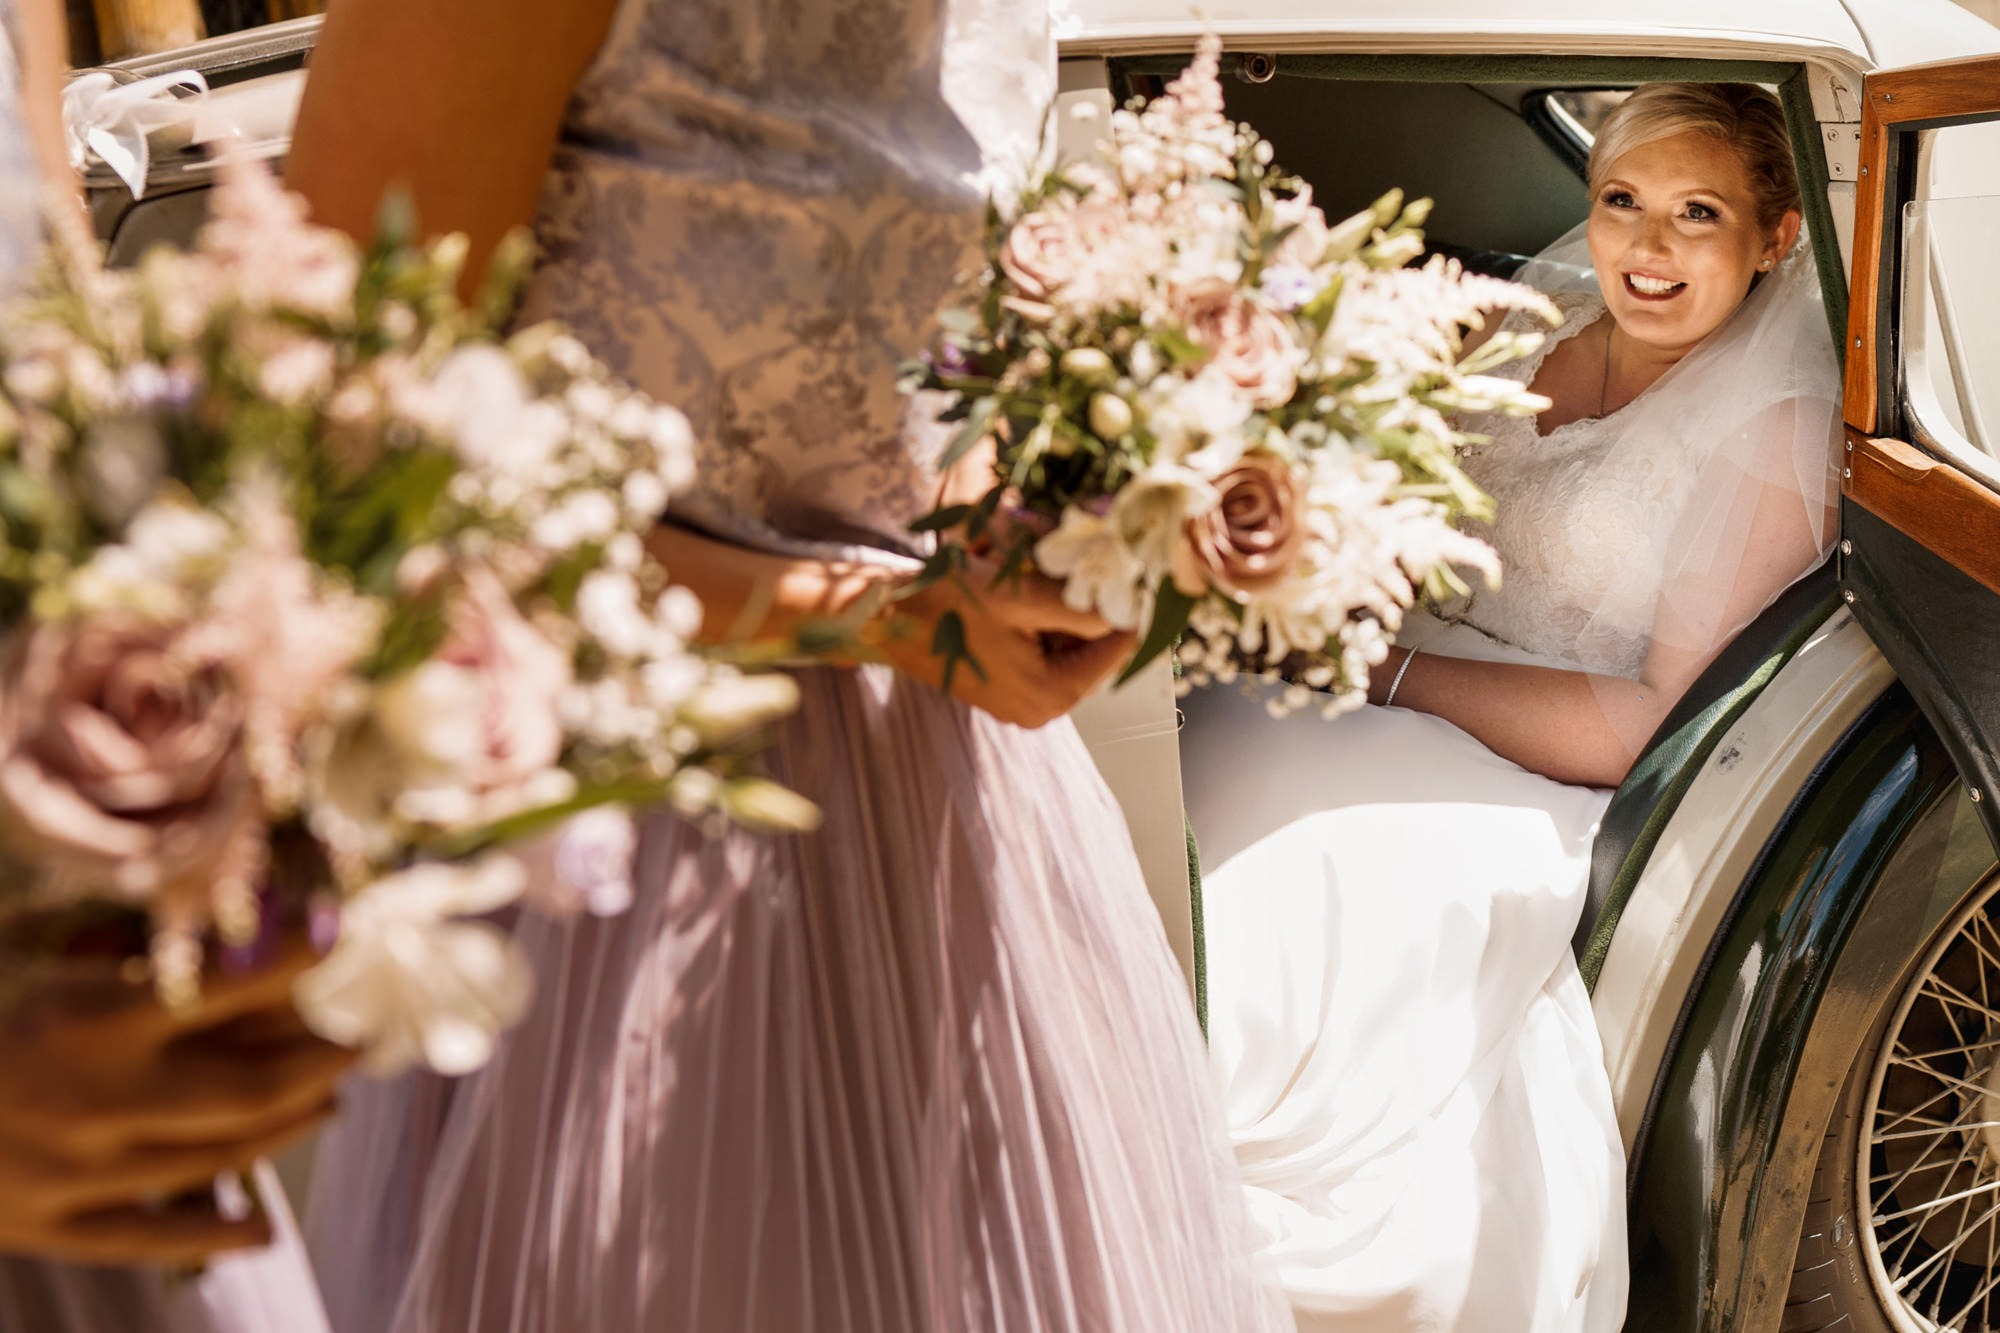 bride getting out of car shot through bridesmaids flowers